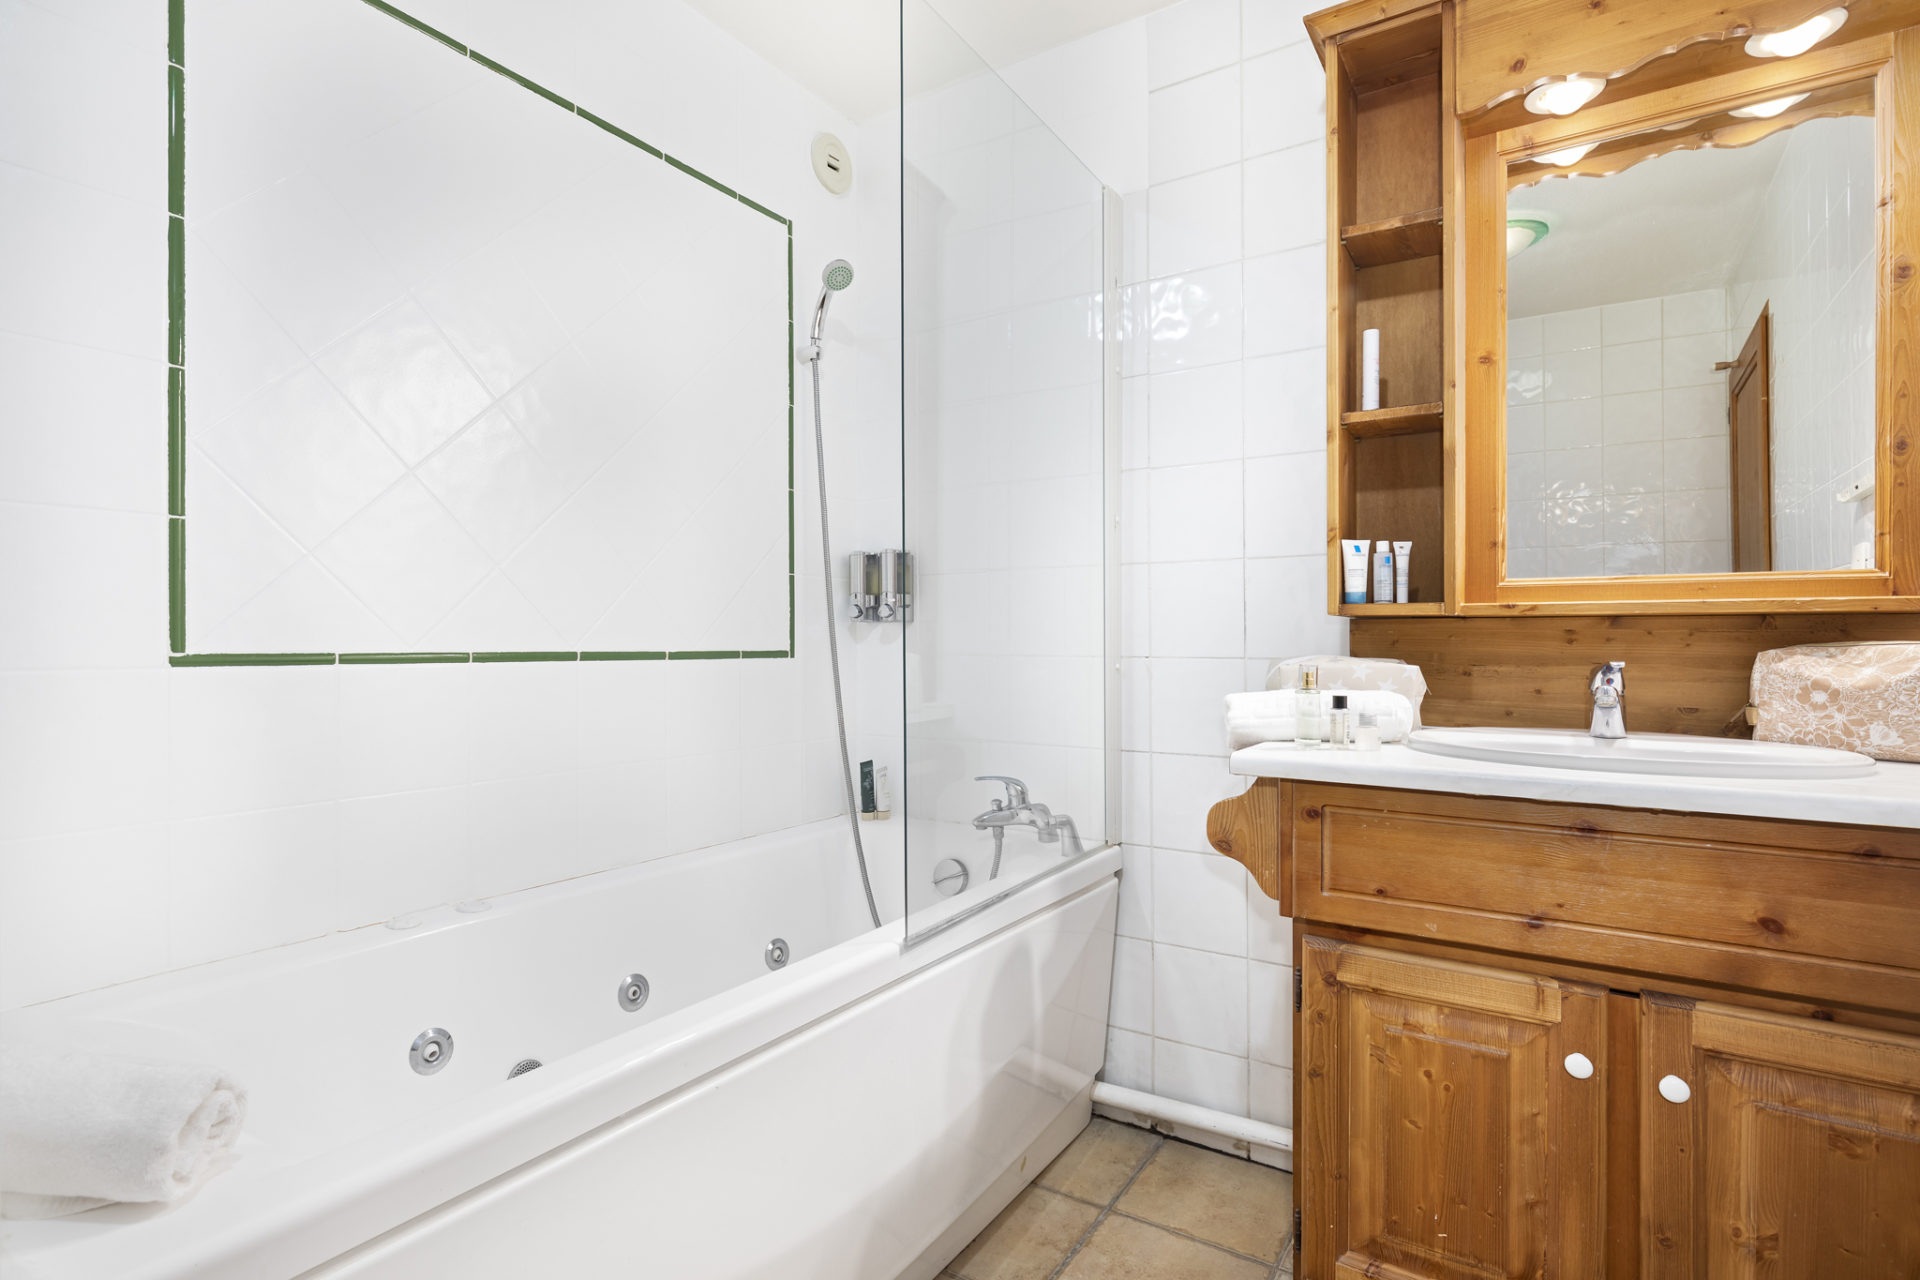 Image of a bathroom featuring bath, shower and sink in Les Balcons de Val Thorens